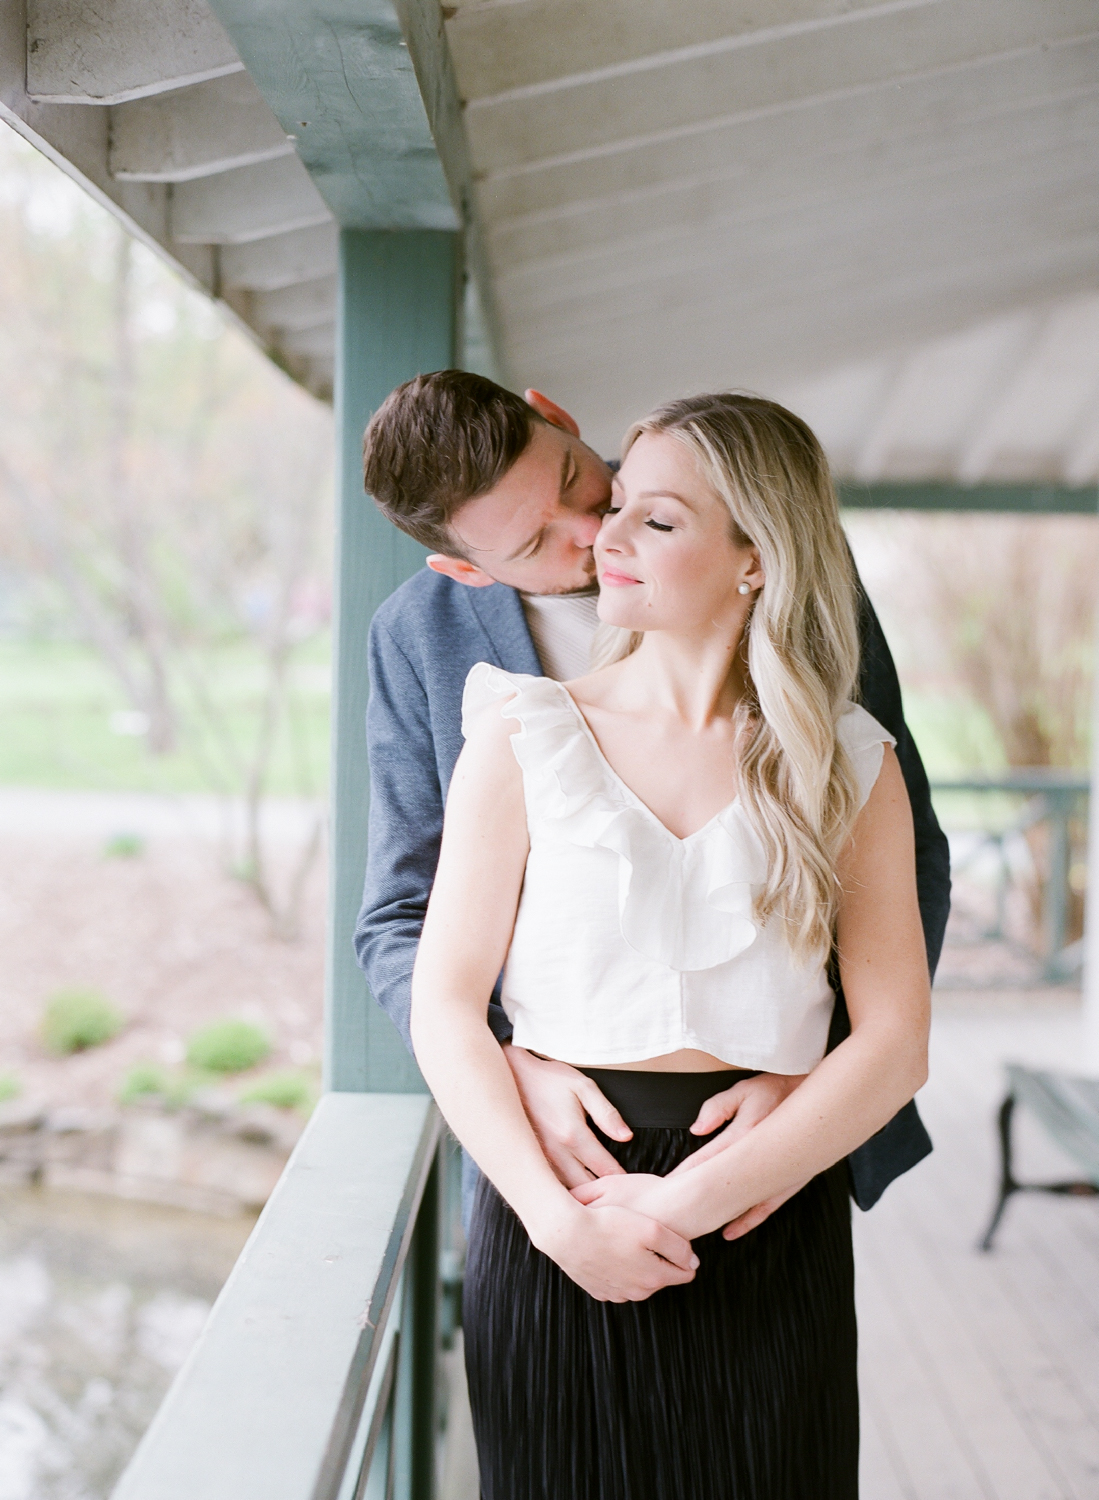 Jacqueline Anne Photography - Naphtali and Matt-74.jpg